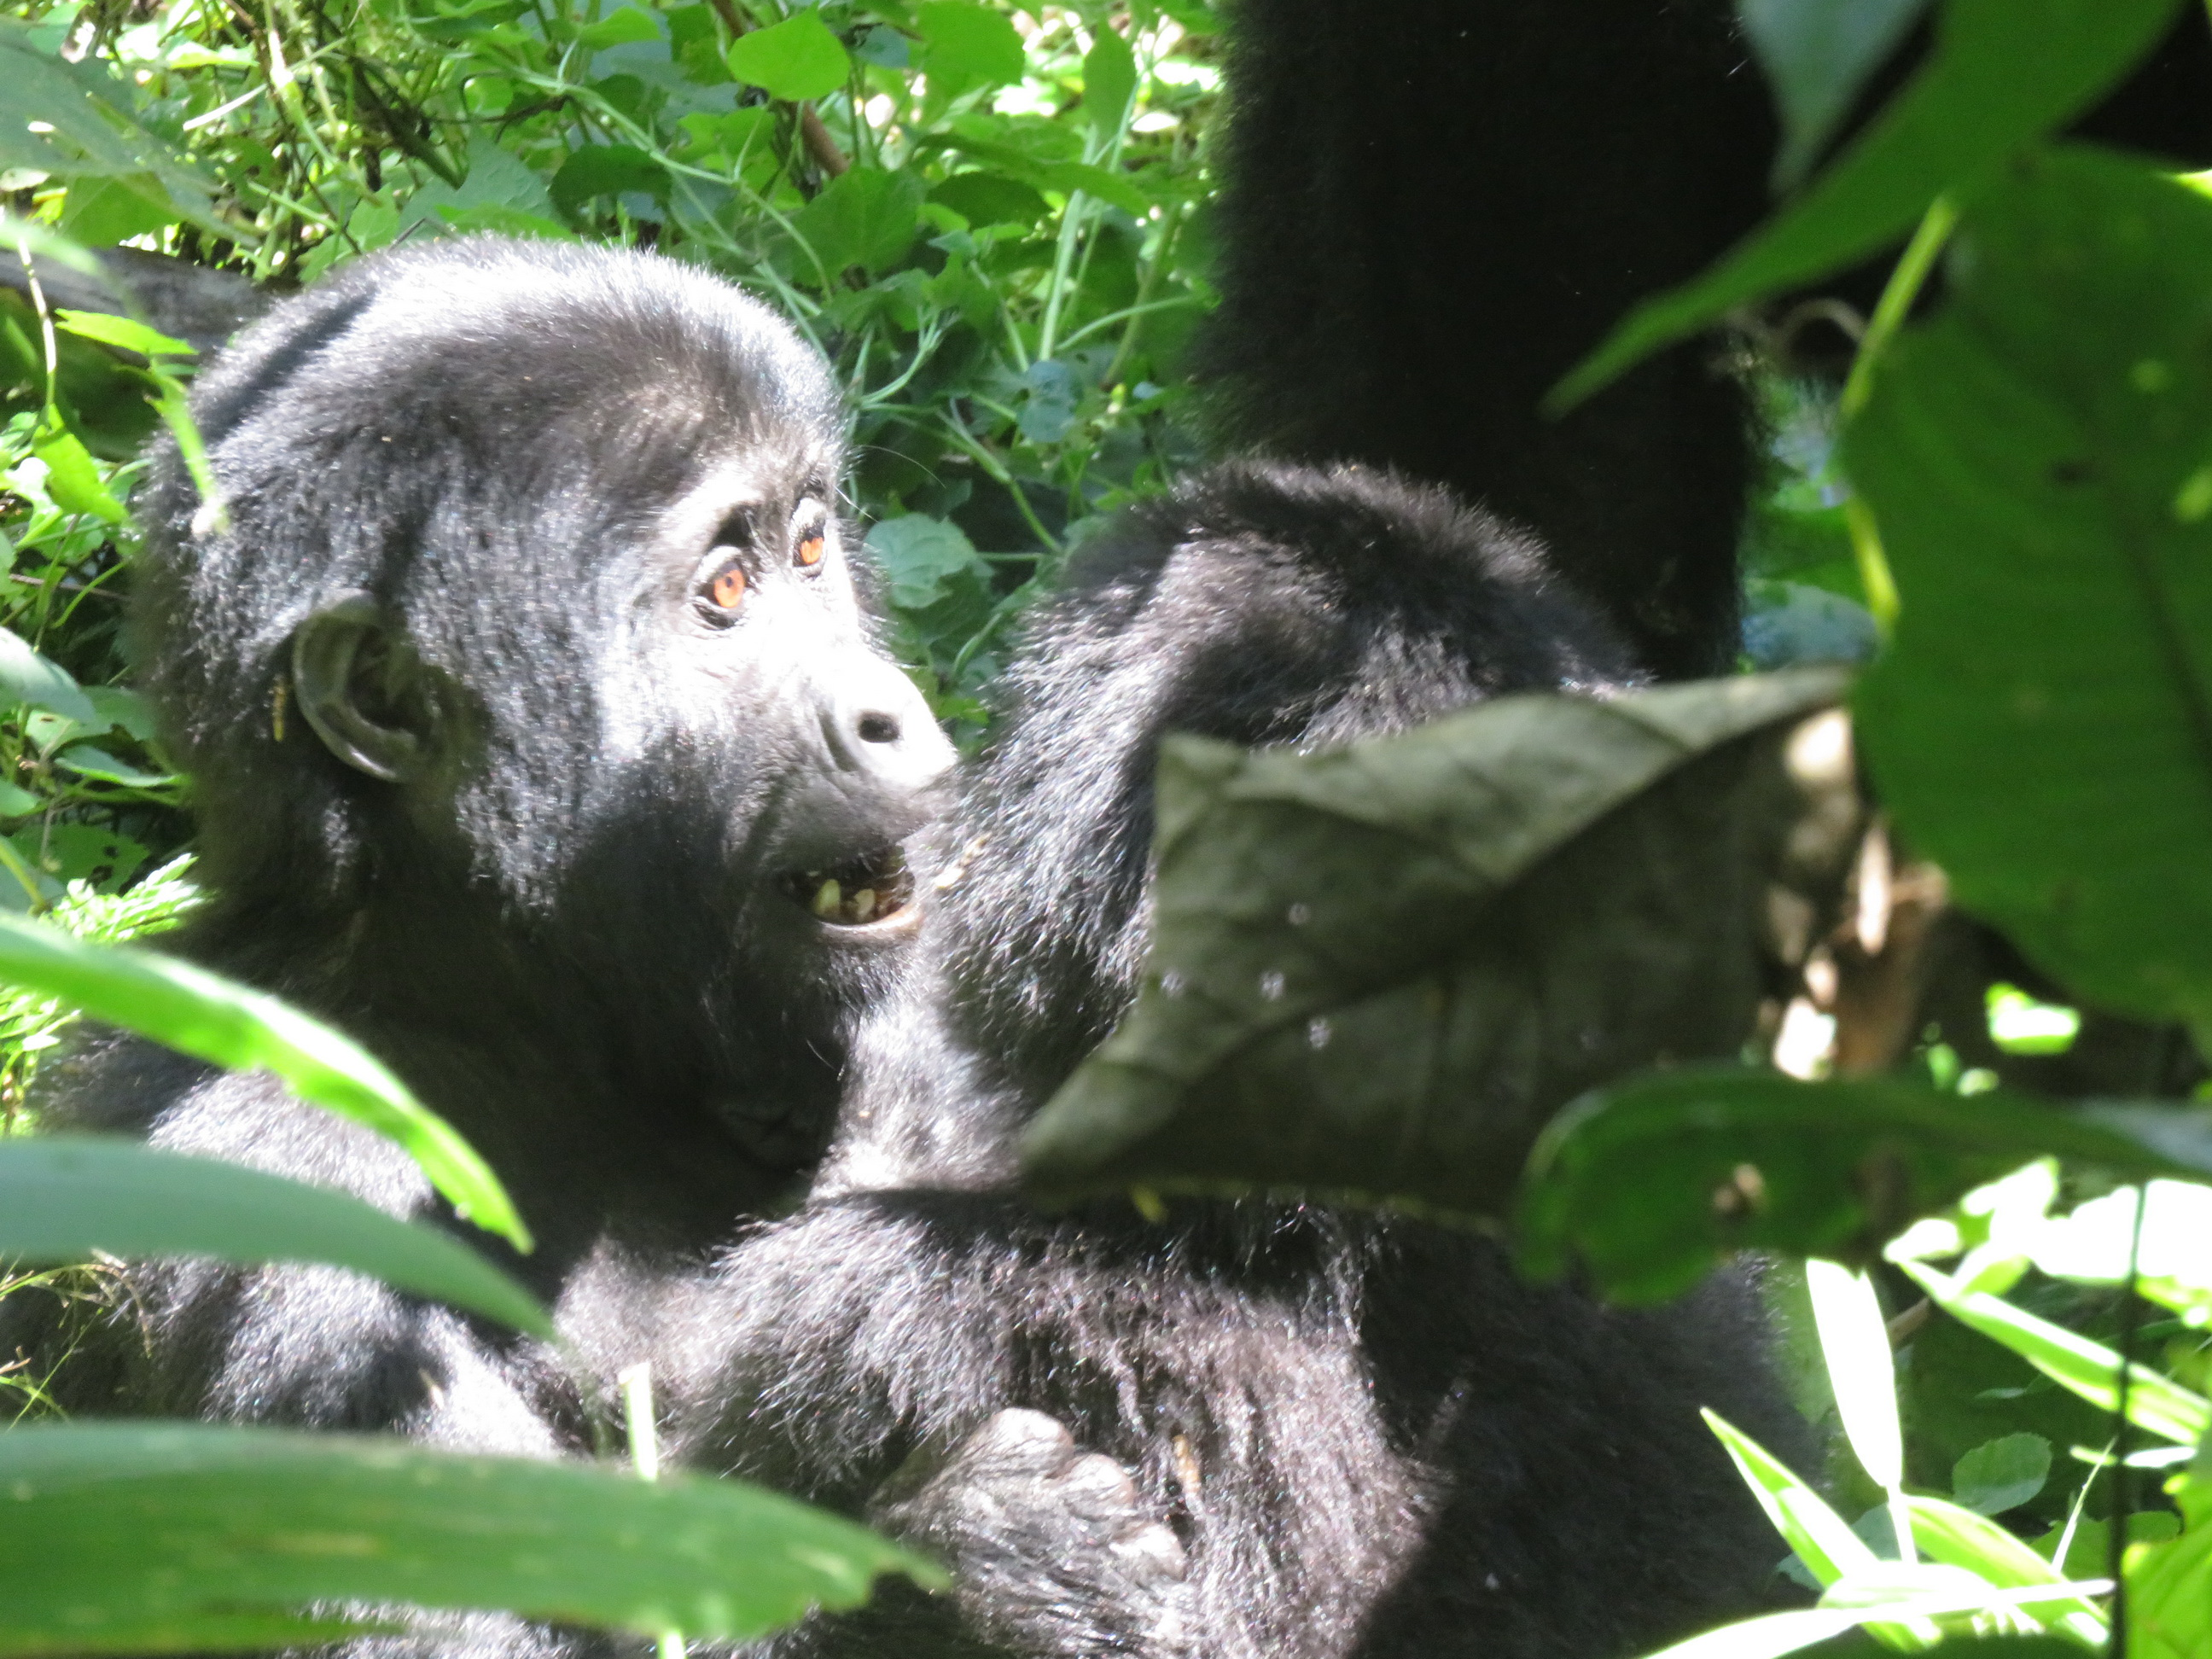 Gorilla safari in Uganda - by Vivienne Lewis